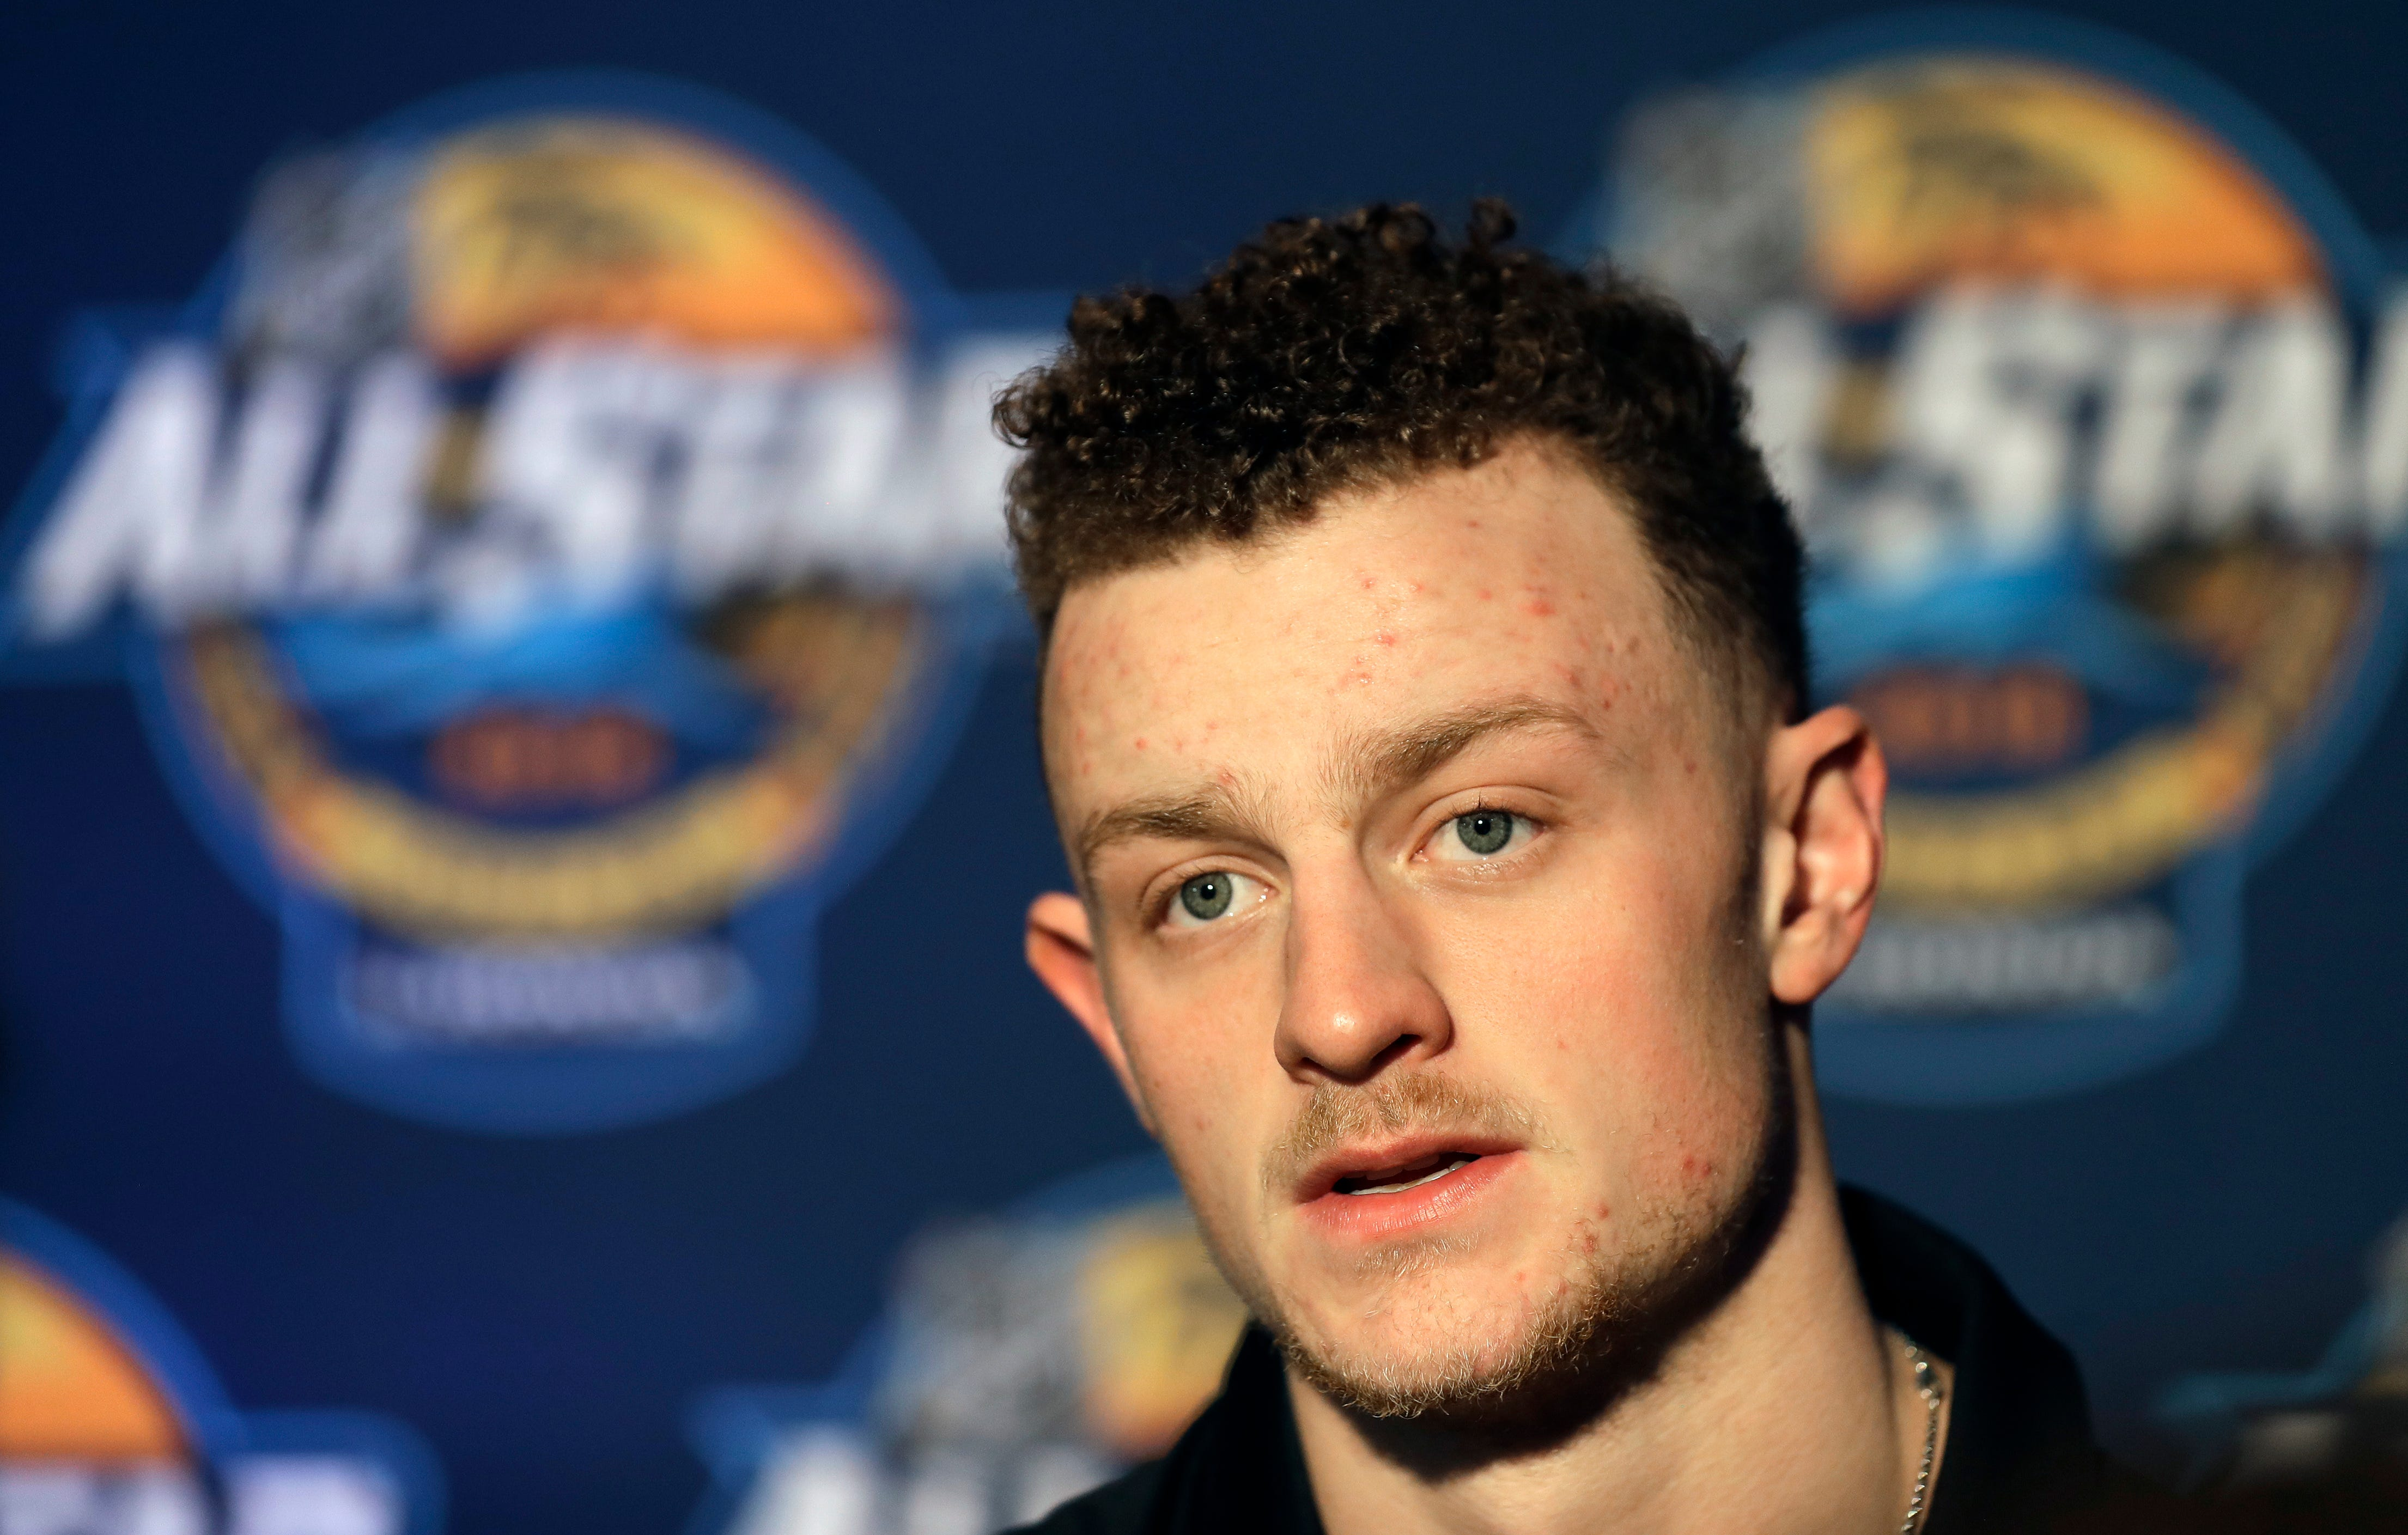 Sabres' Eichel focuses on keeping fiery emotions in check